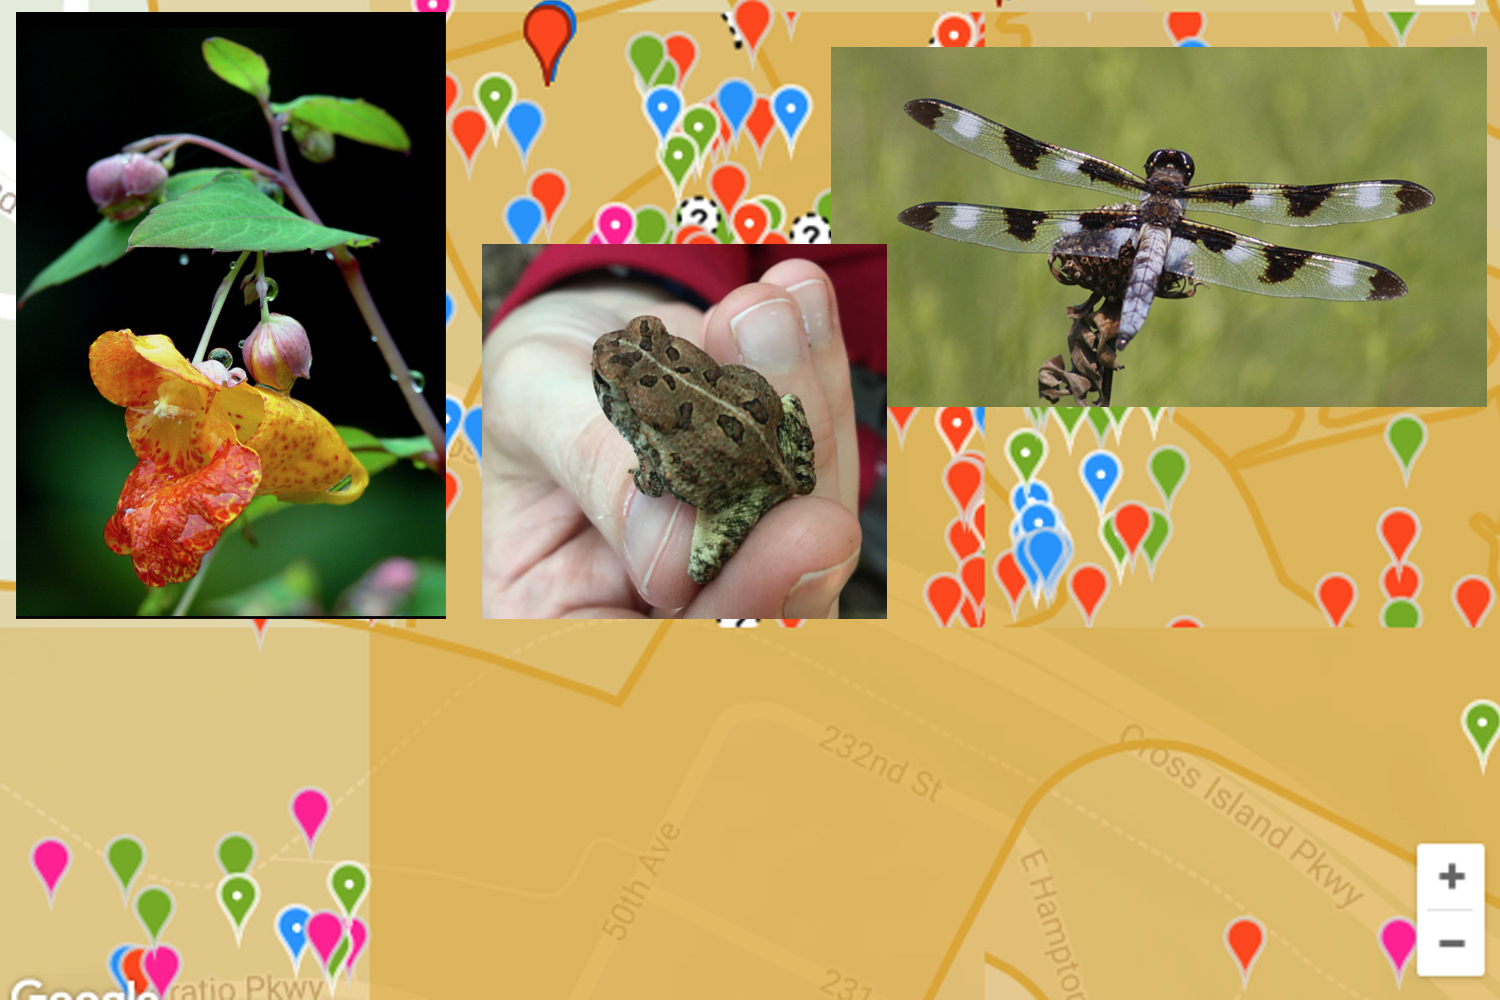 Collage of plant and animals